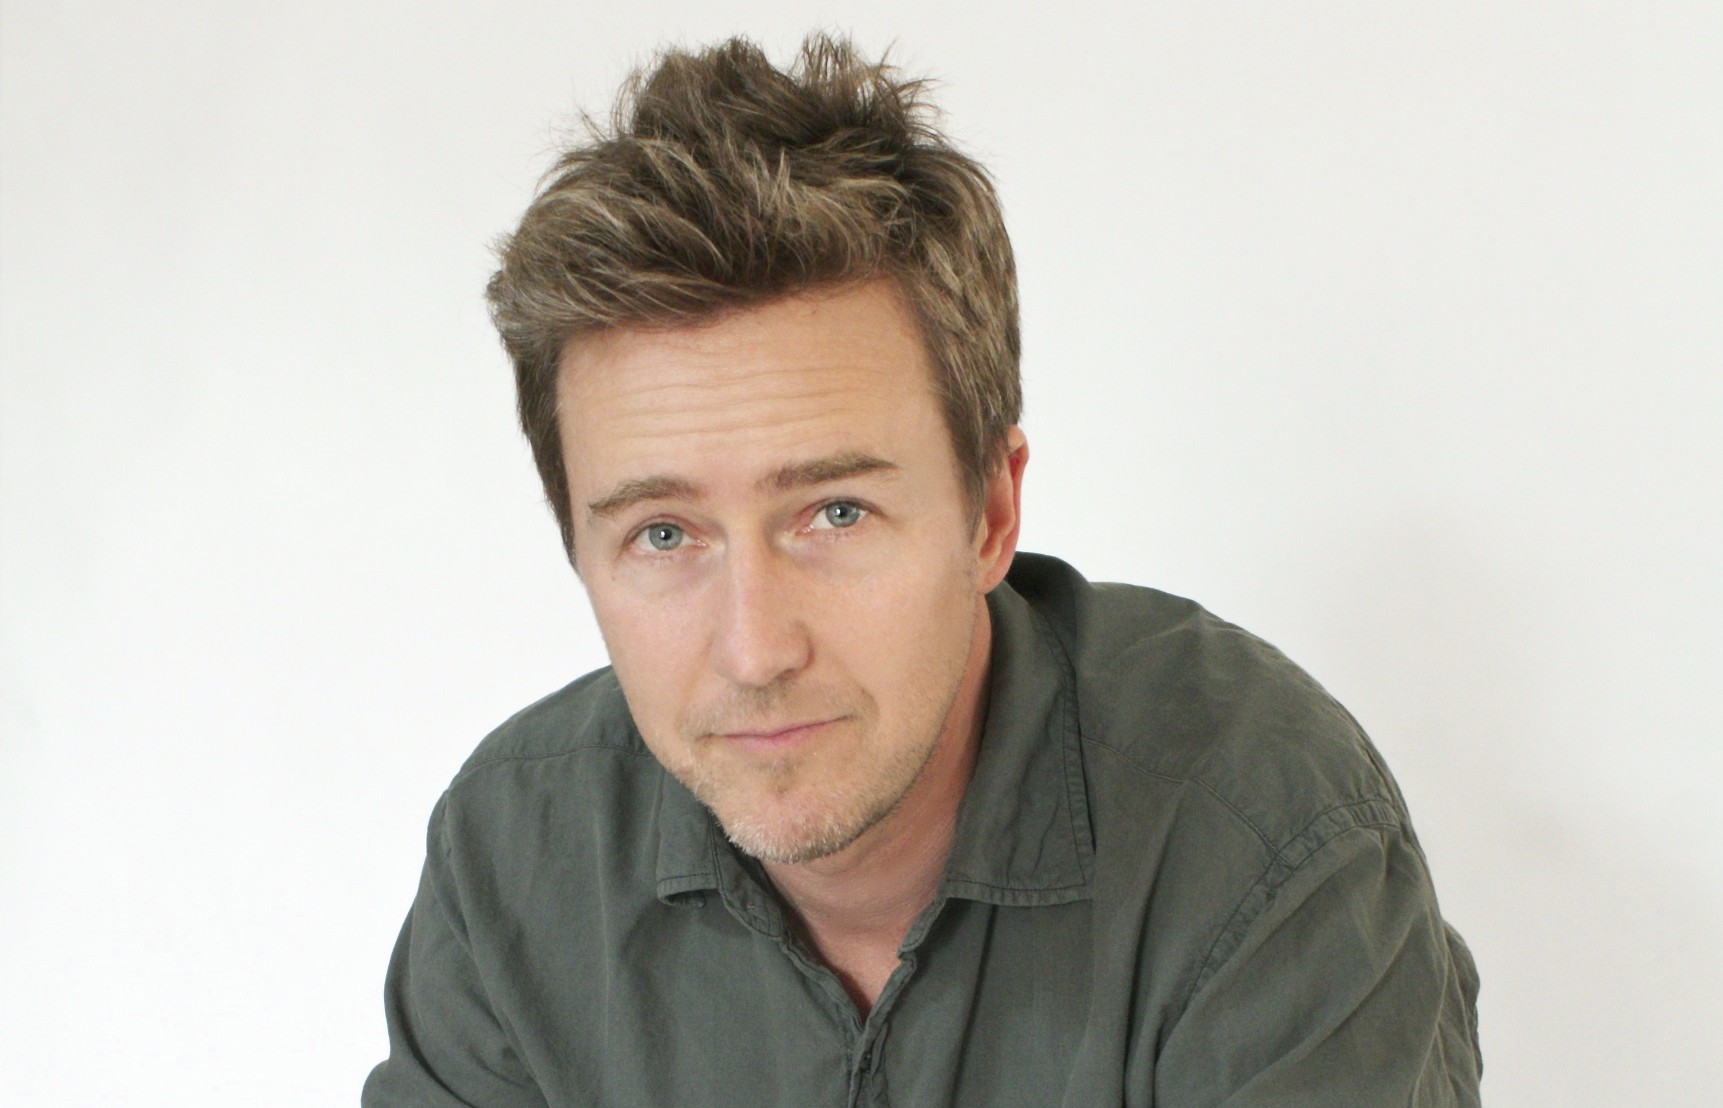 Edward Norton Wallpaper 18   1723 X 1108 stmednet 1723x1108